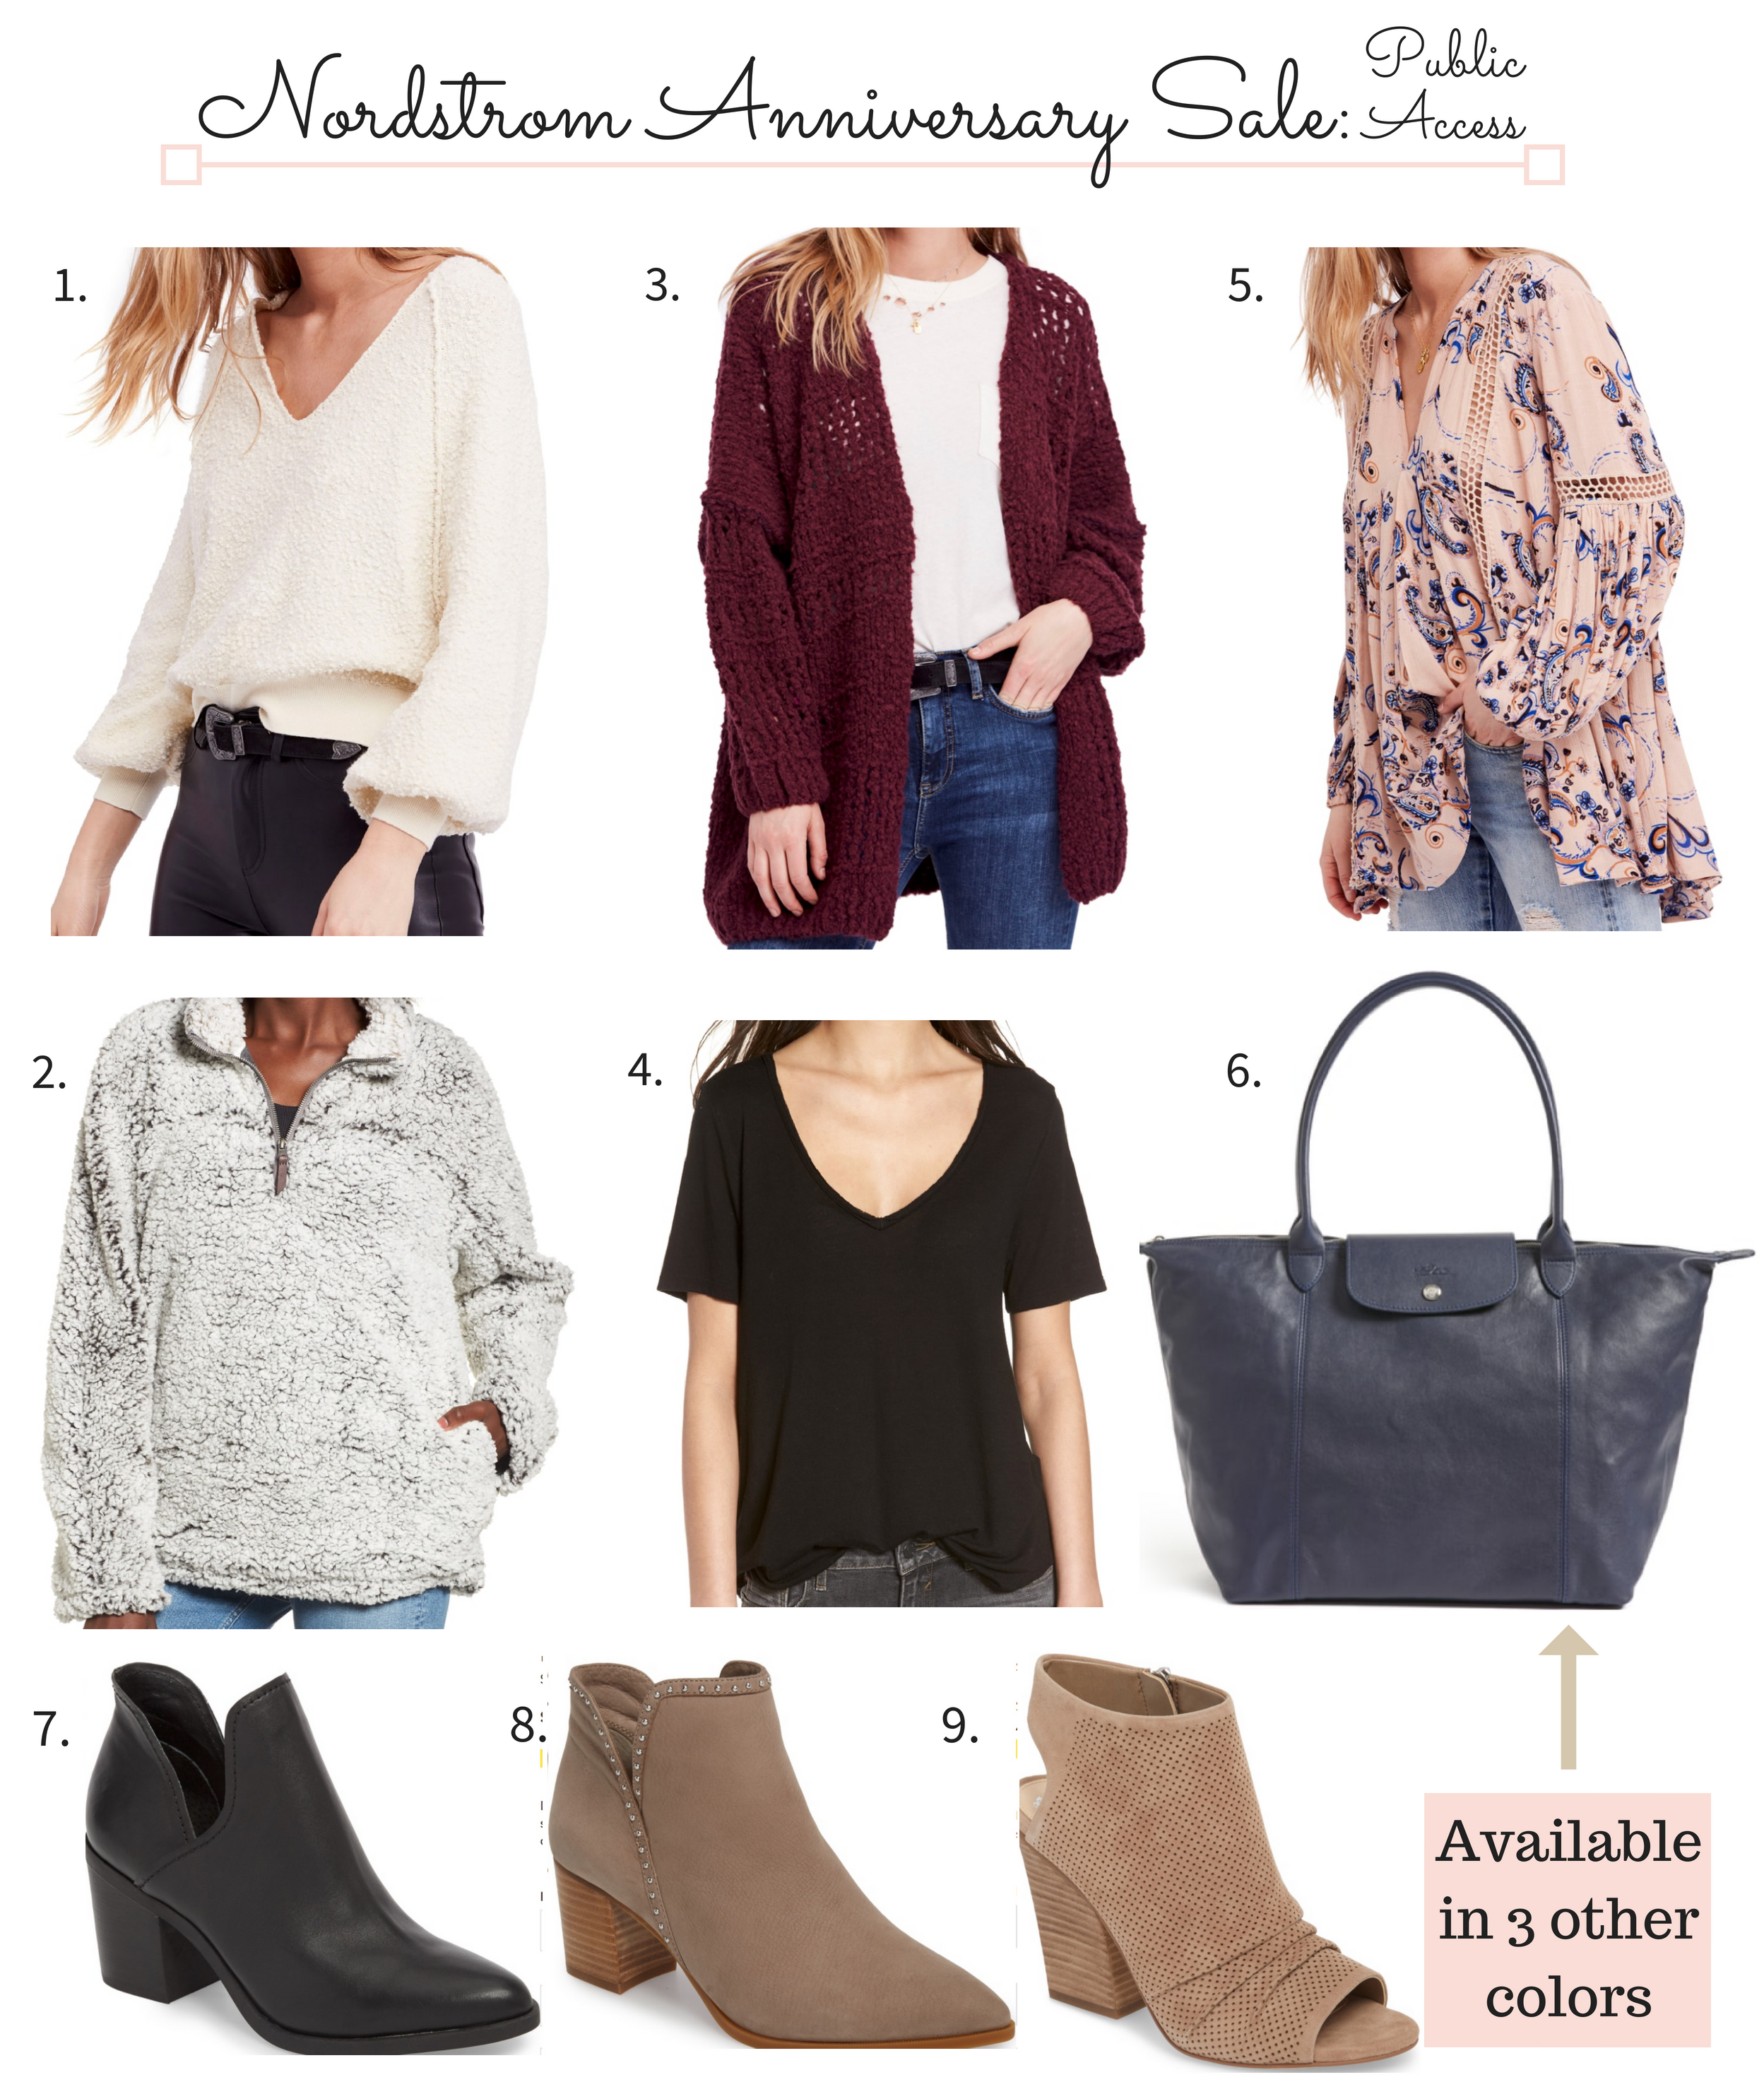 Nordstrom Anniversary Sale 2018 Picks public access